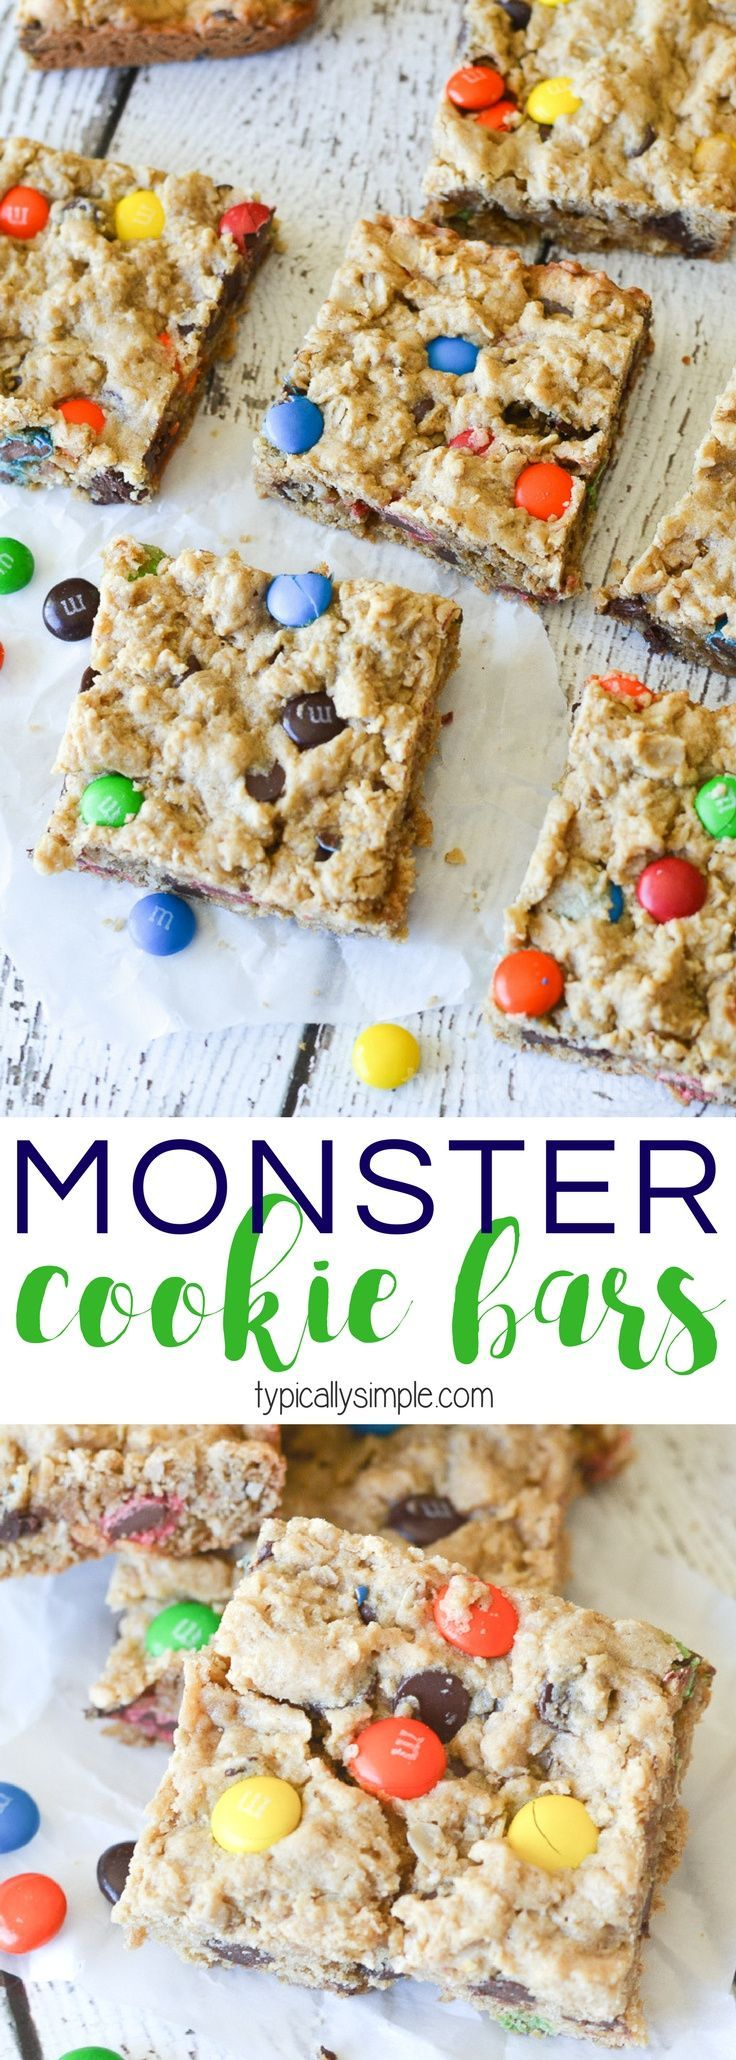 These Monster Cookie Bars are SO delcious - packed full of yummy chocolate chips and M&M's and just the right amount of soft and chewy texture!